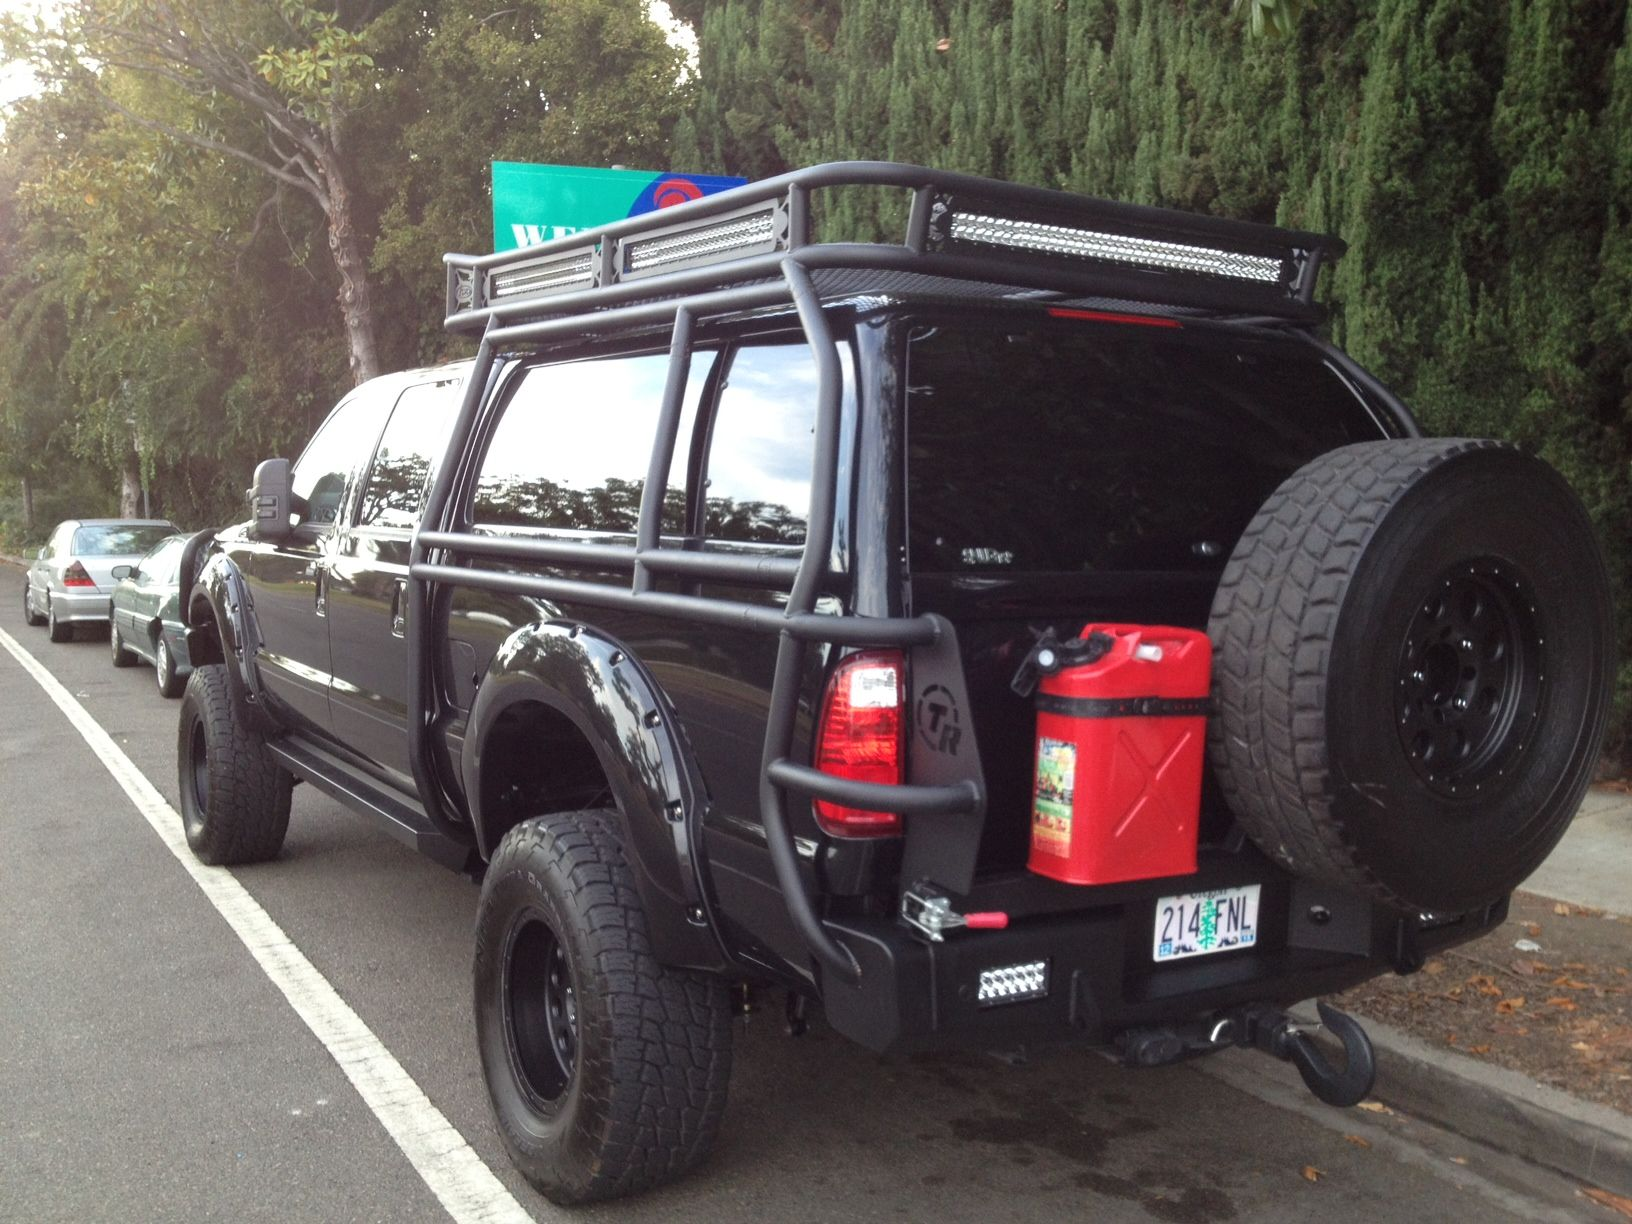 Roll Cage For Truck Off Roading Pinterest Vehicle